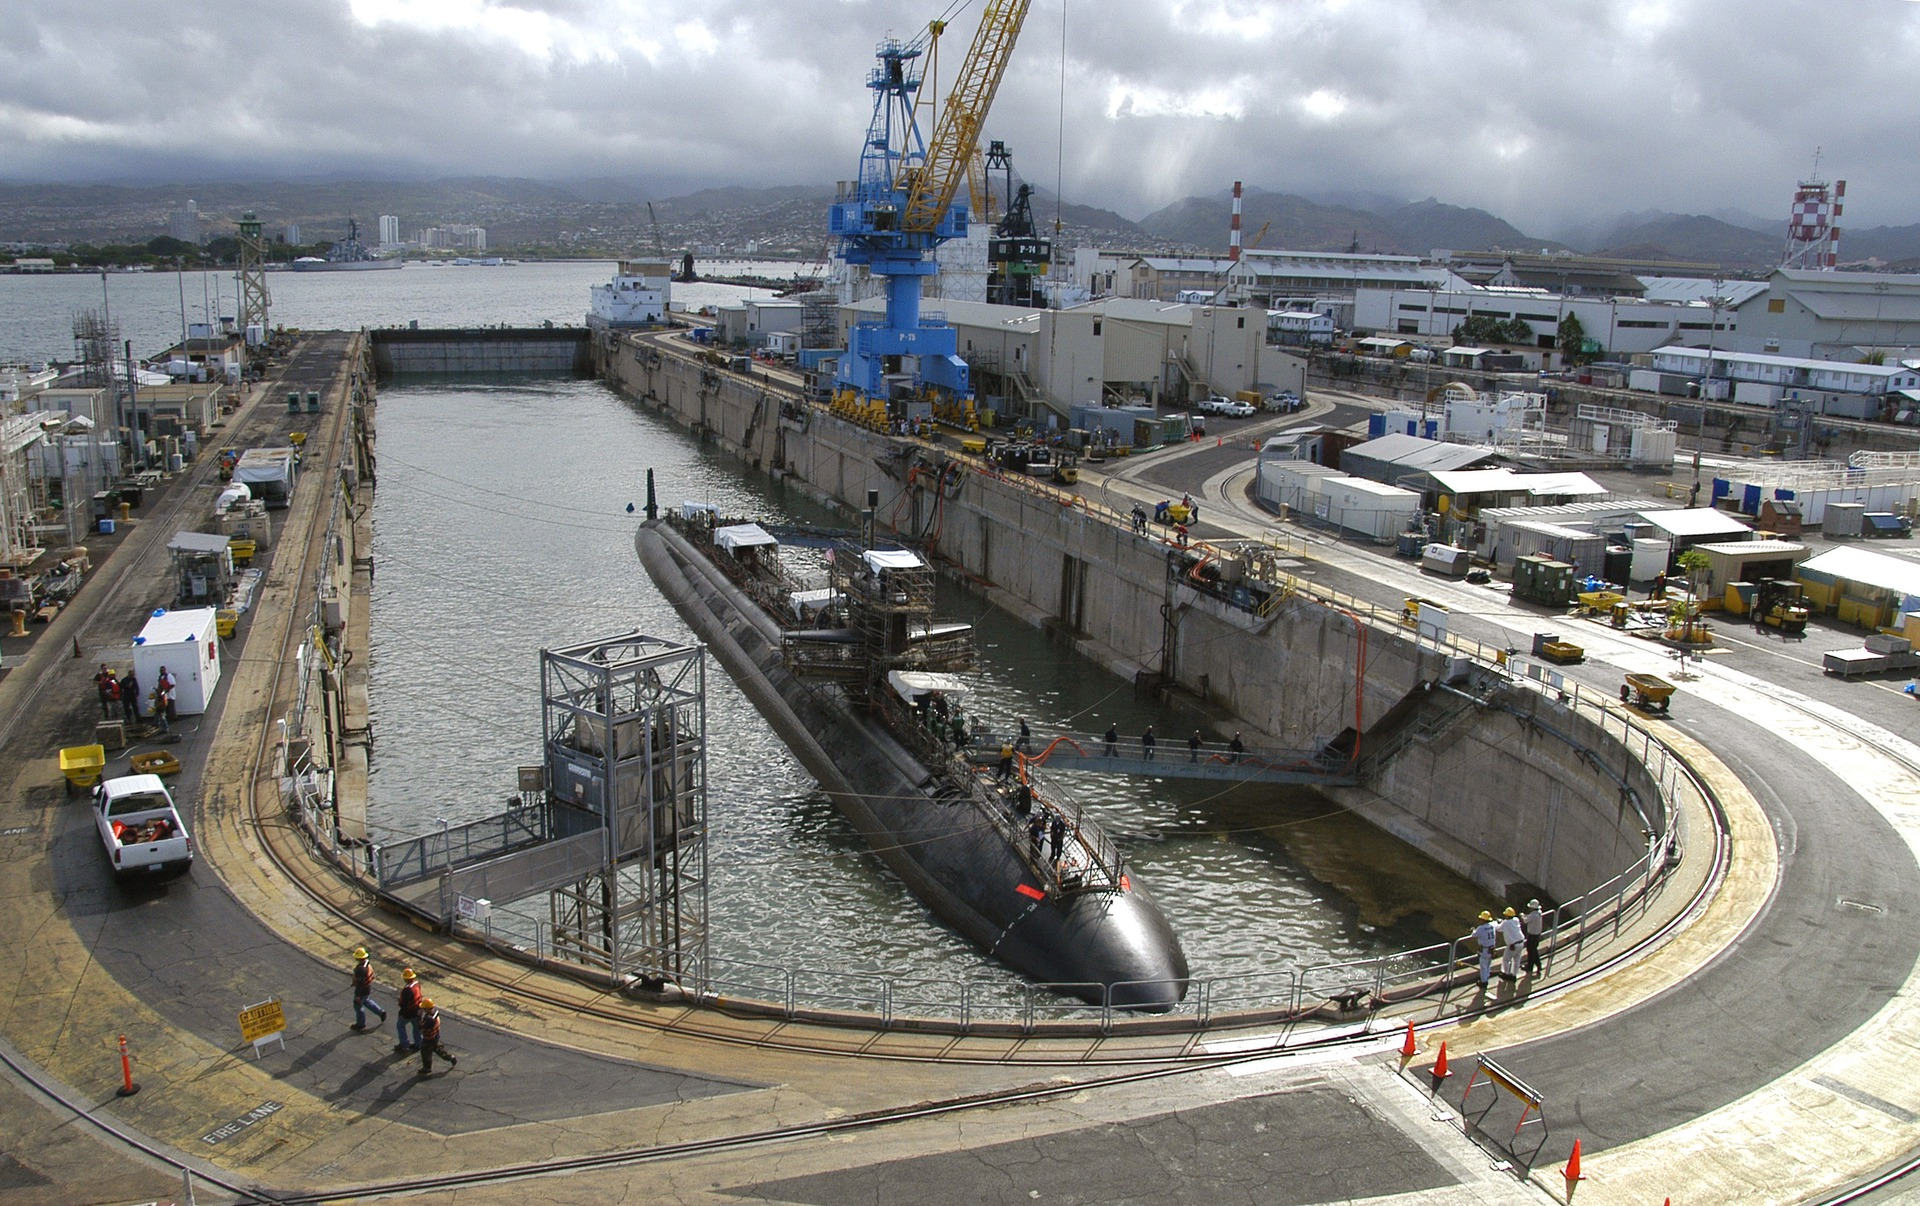 Multiple casualties in shooting at Pearl Harbor shipyard: reports